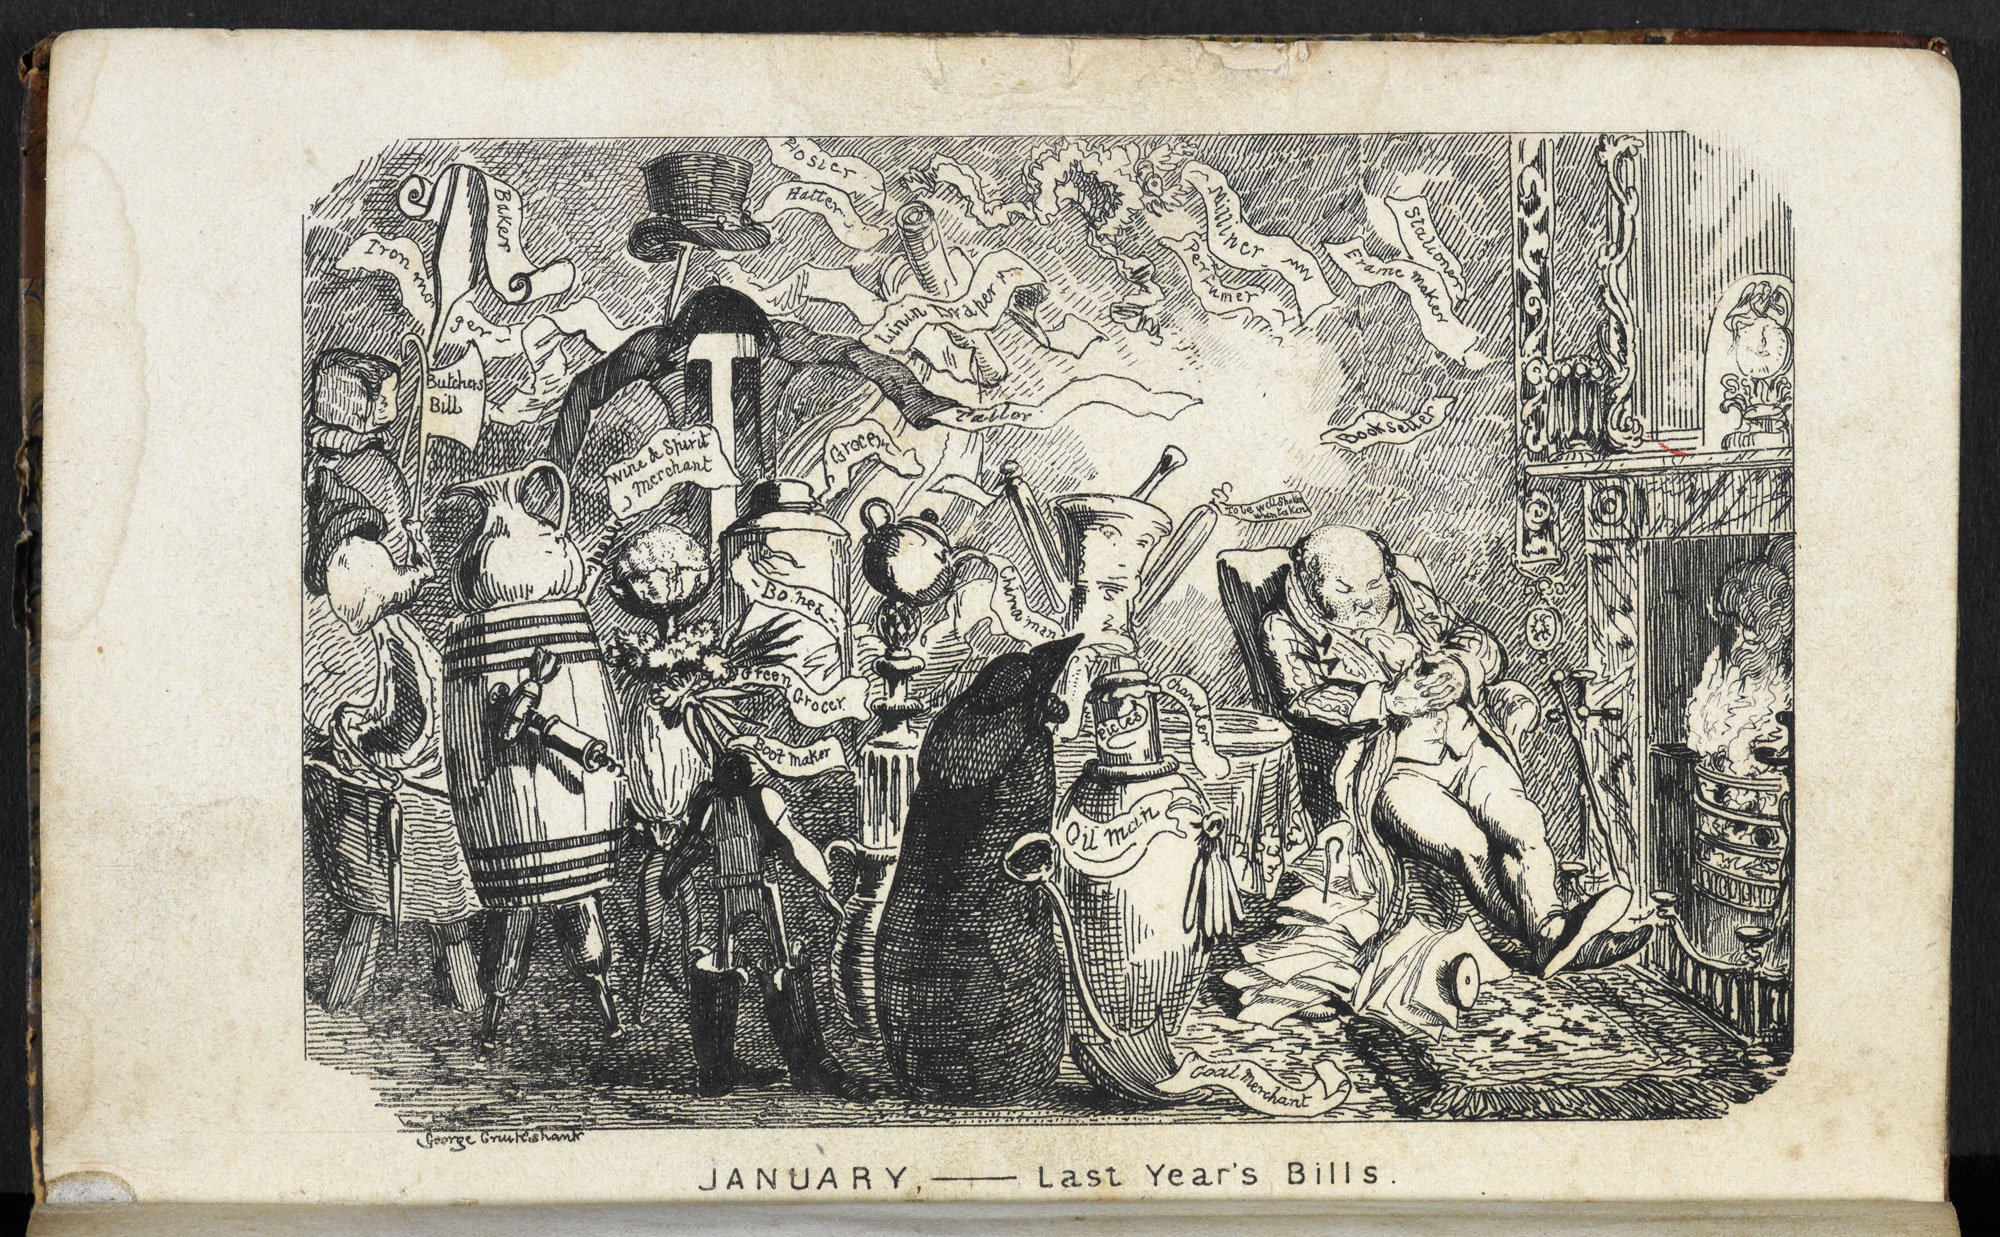 Sketches illustrating the months by George Cruikshank [page: ['January - Last Year's Bills']]